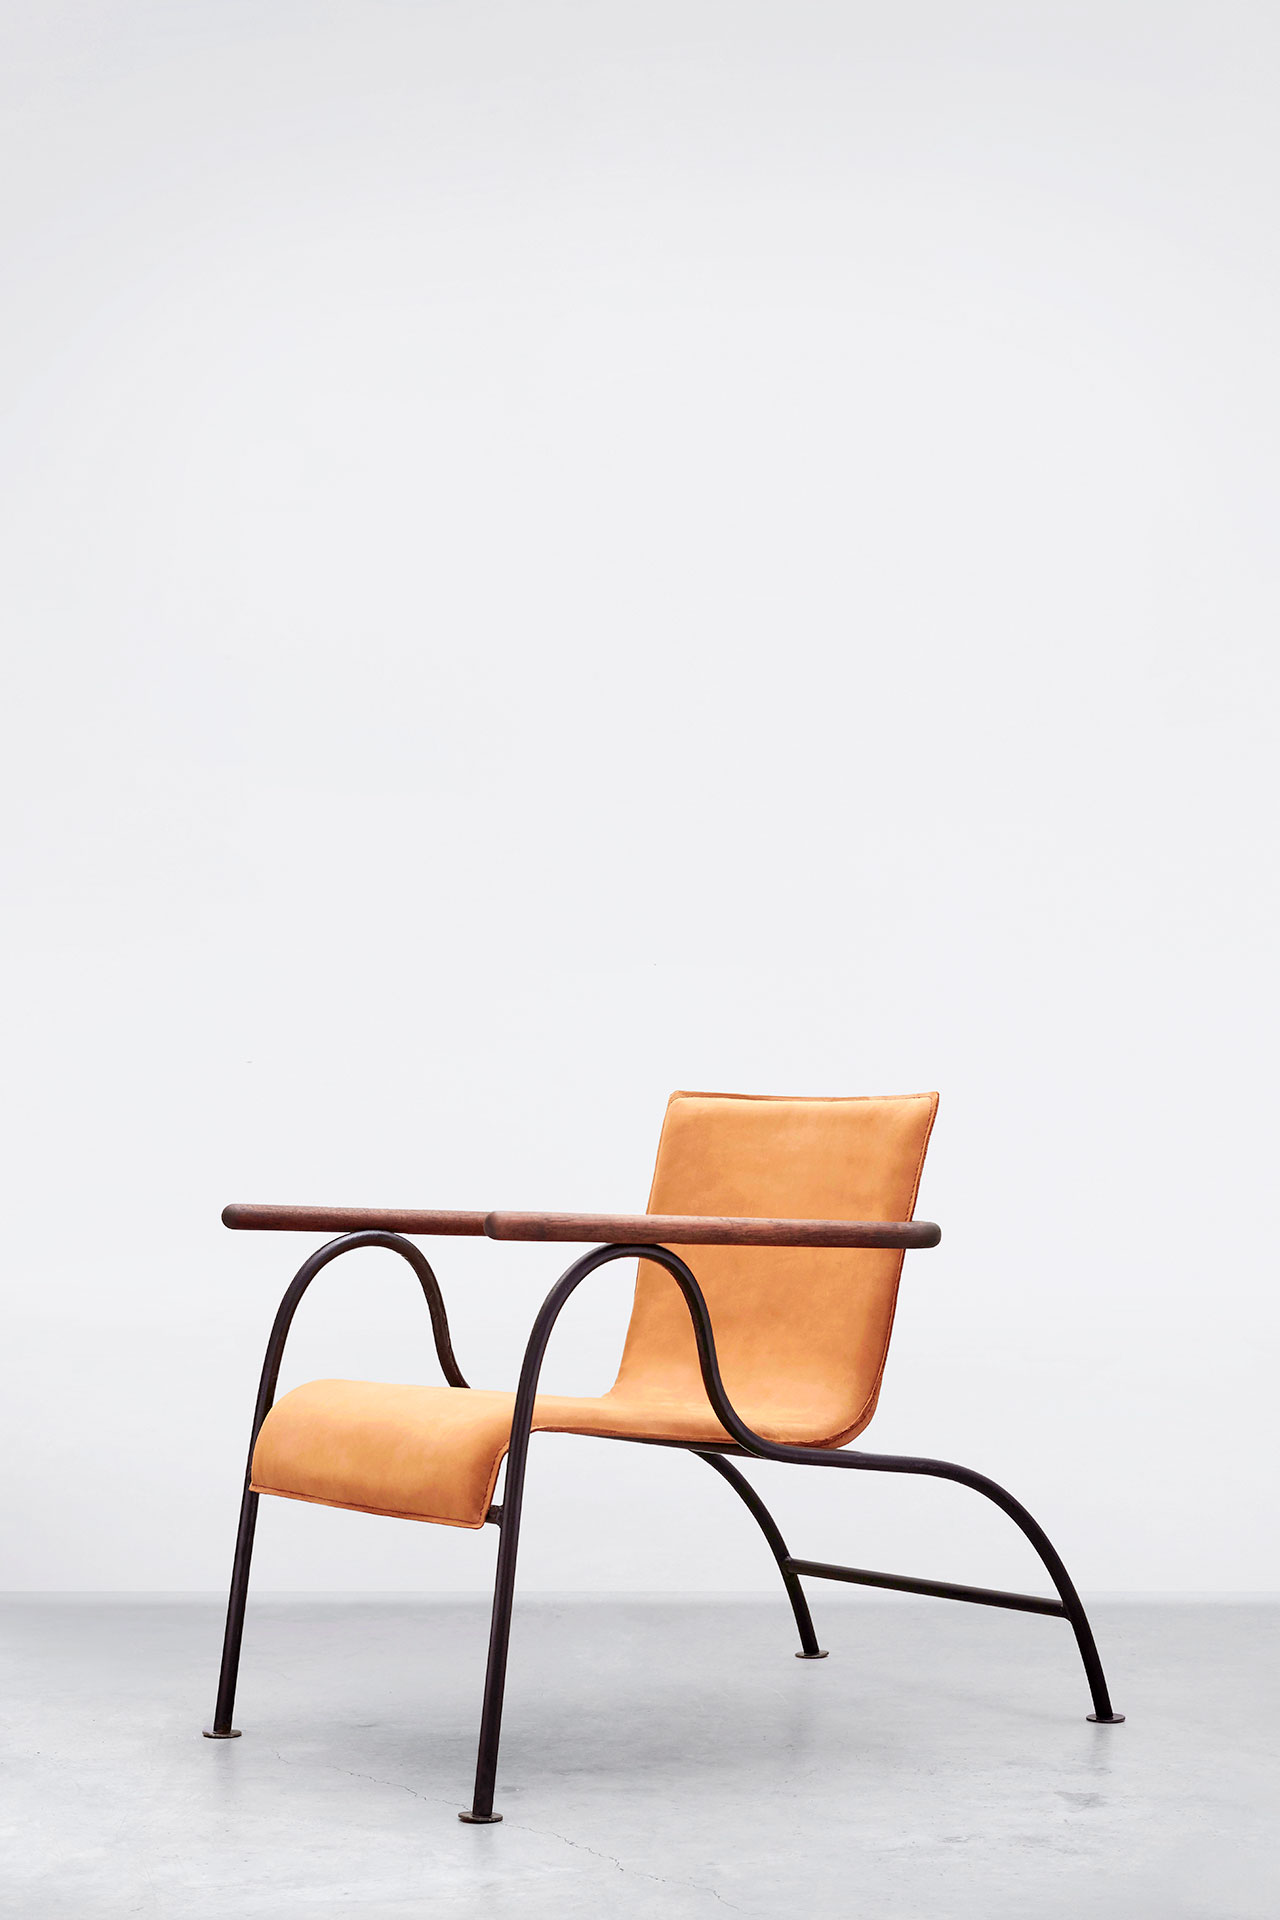 Tankan (Stroke) lounge chair. Photo by Sameer Belvalkar.